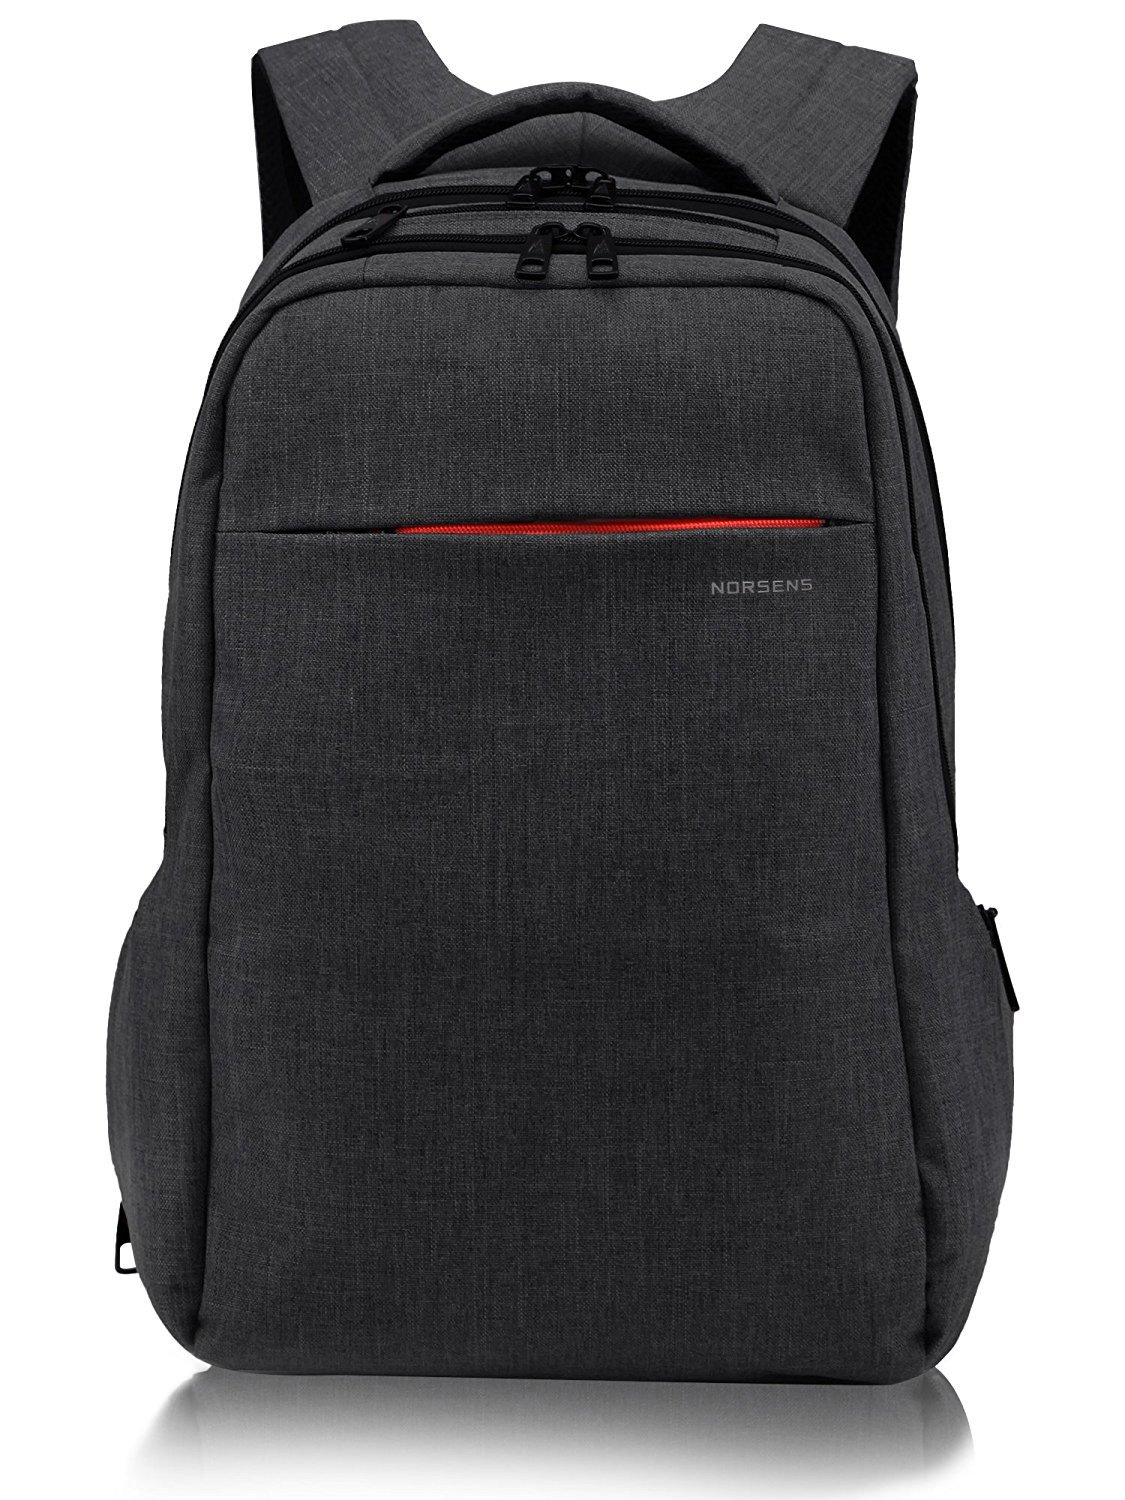 3d34a7c9dfdf NORSENS Lightweight Laptop Backpacks 15.6inch Slim Business Backpack for  Laptop Notebook Computer  Amazon.co.uk  Computers   Accessories